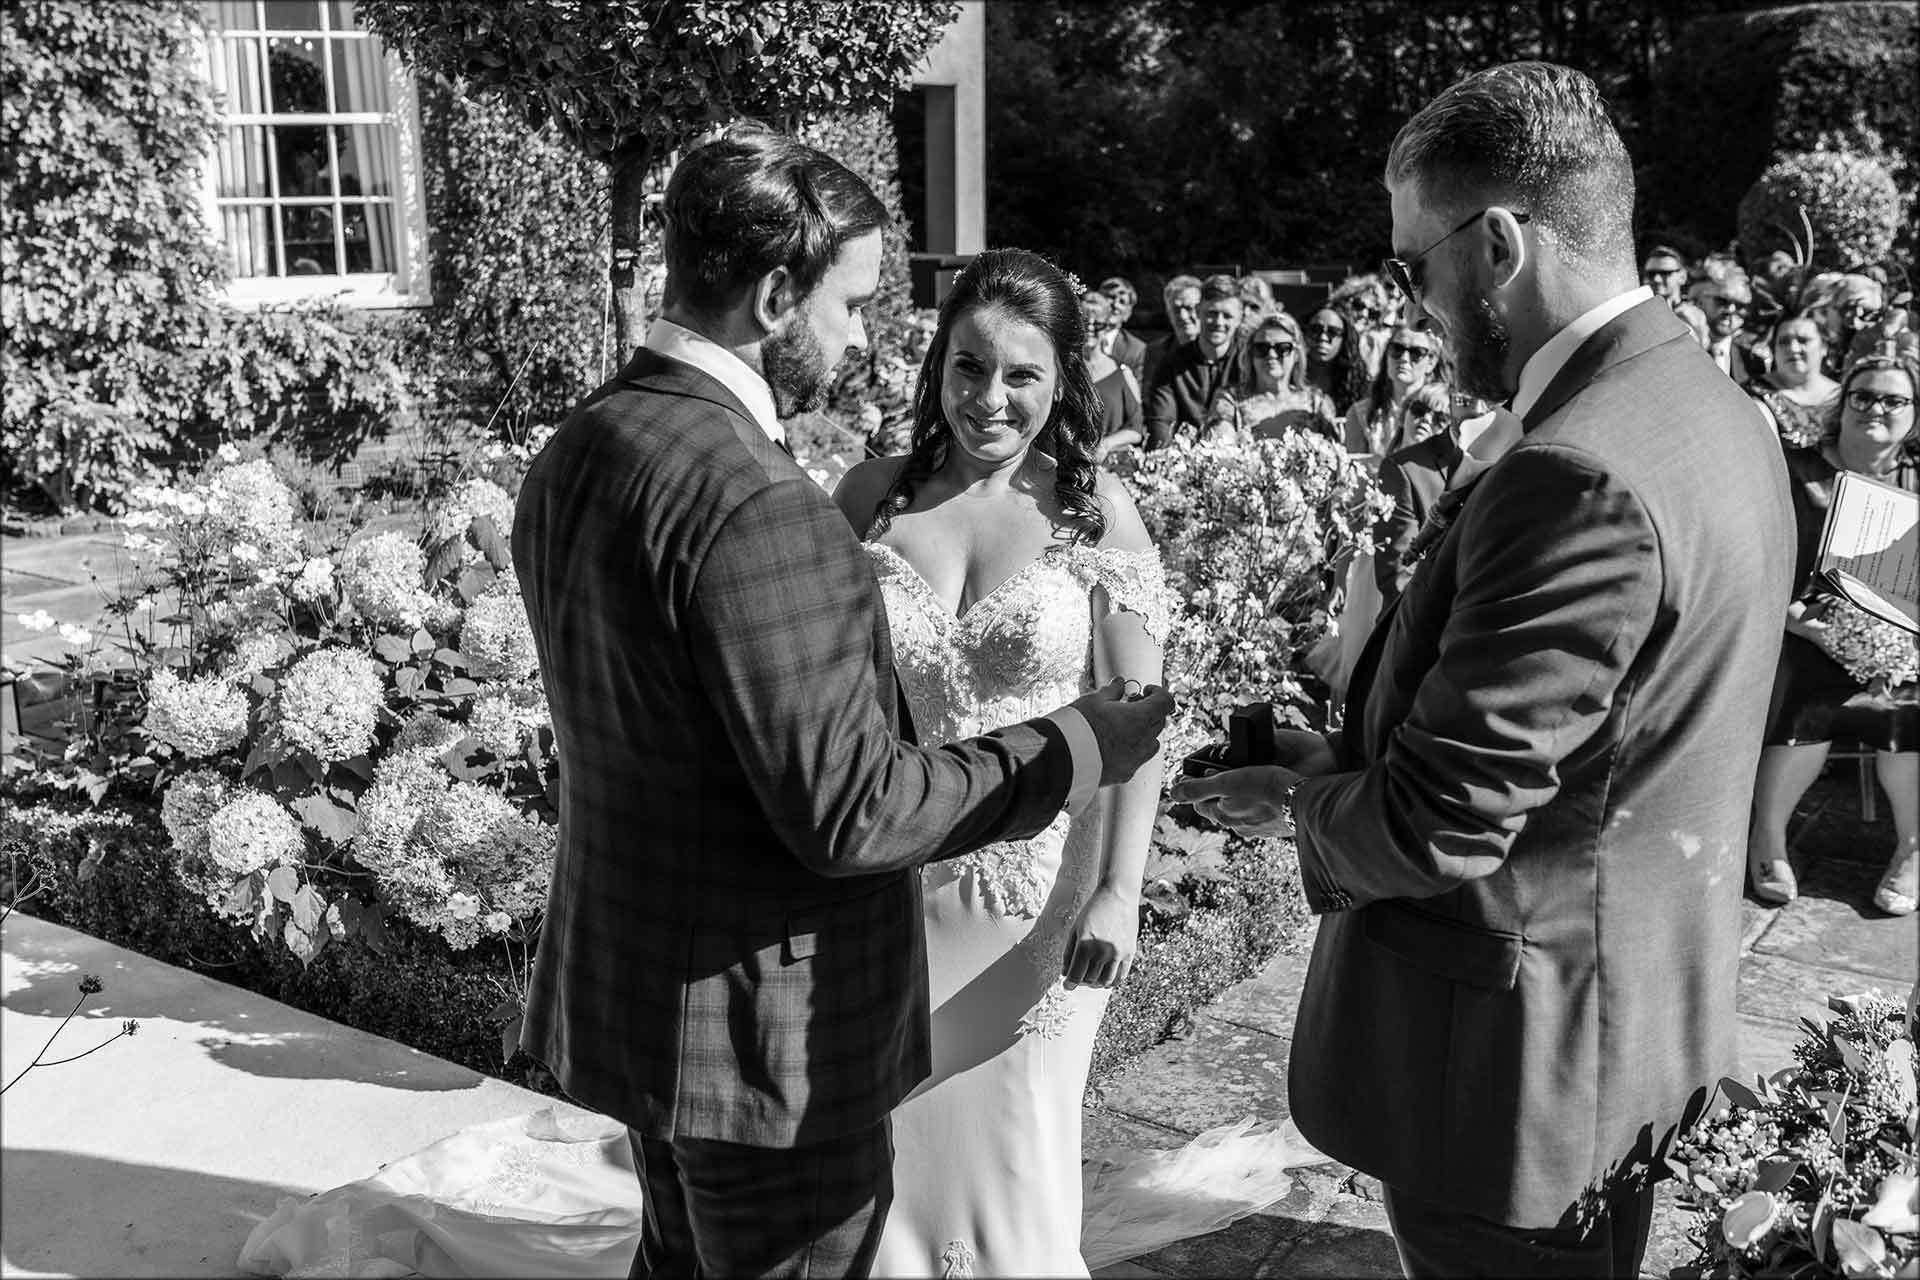 Bride and groom exchange rings during their outdoor wedding ceremony